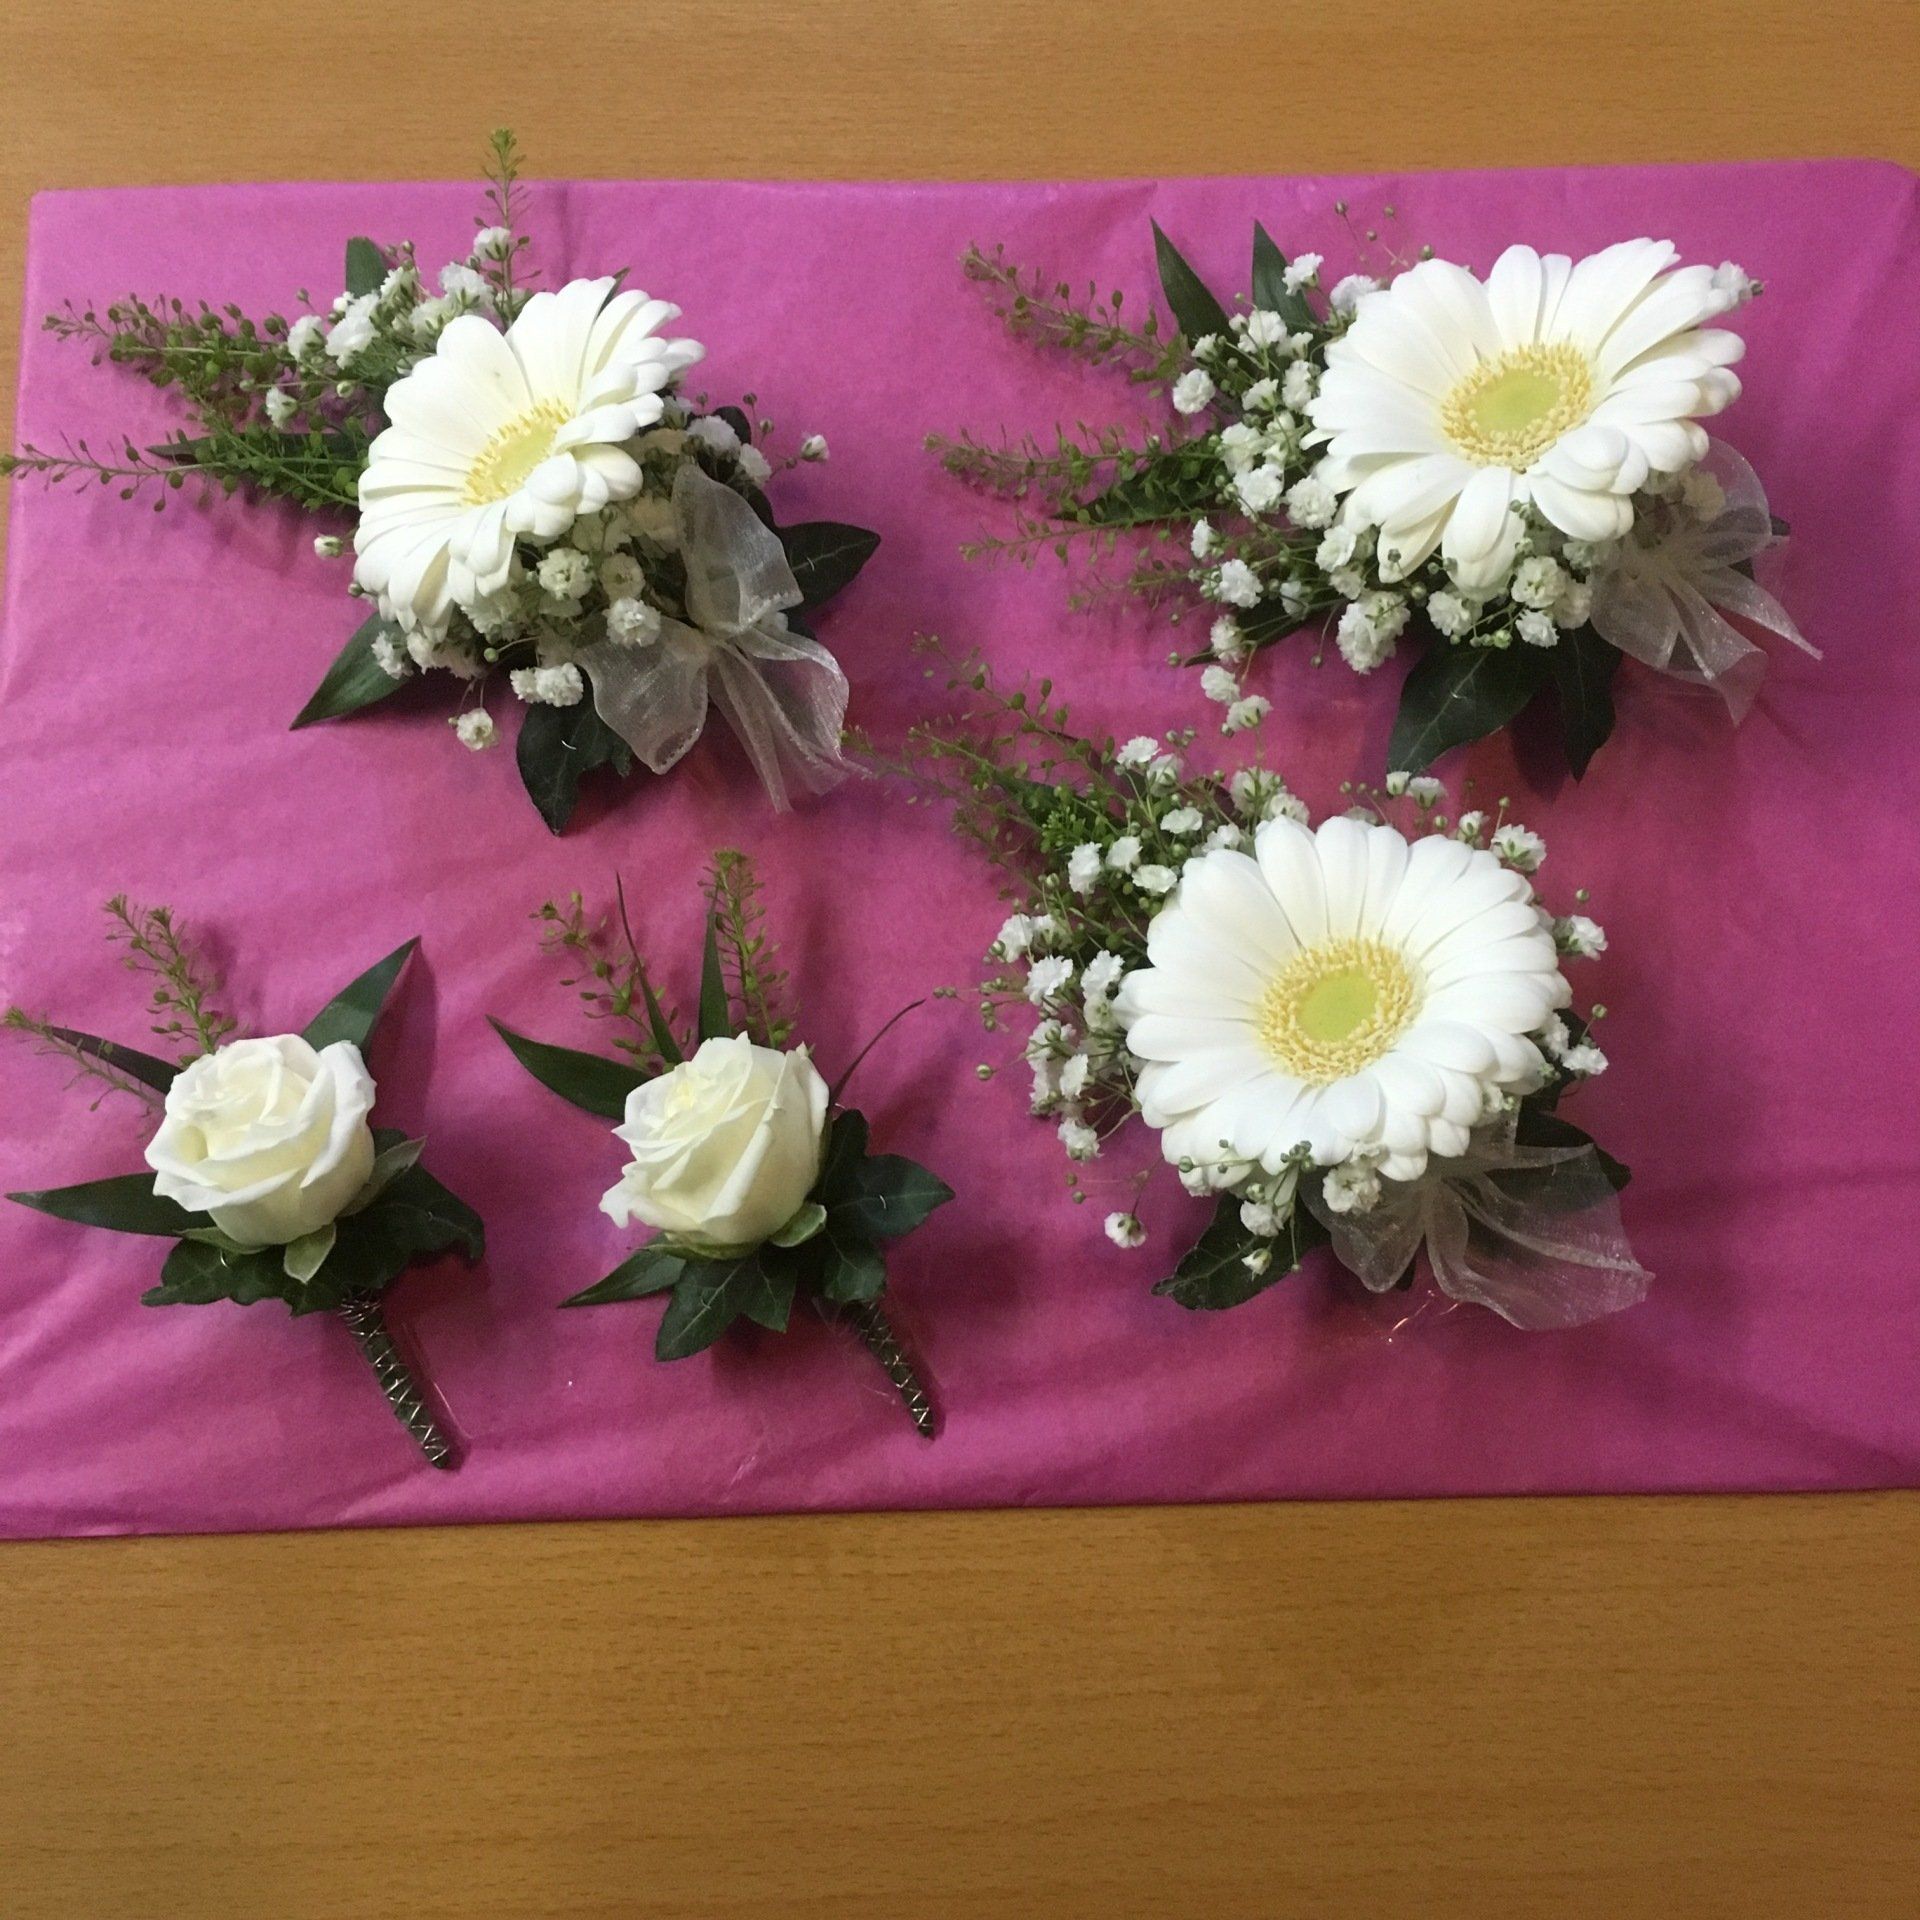 Wedding Flowers Lancashire: Gallery Of Buttonholes Designs And Work, Wedding Flowers